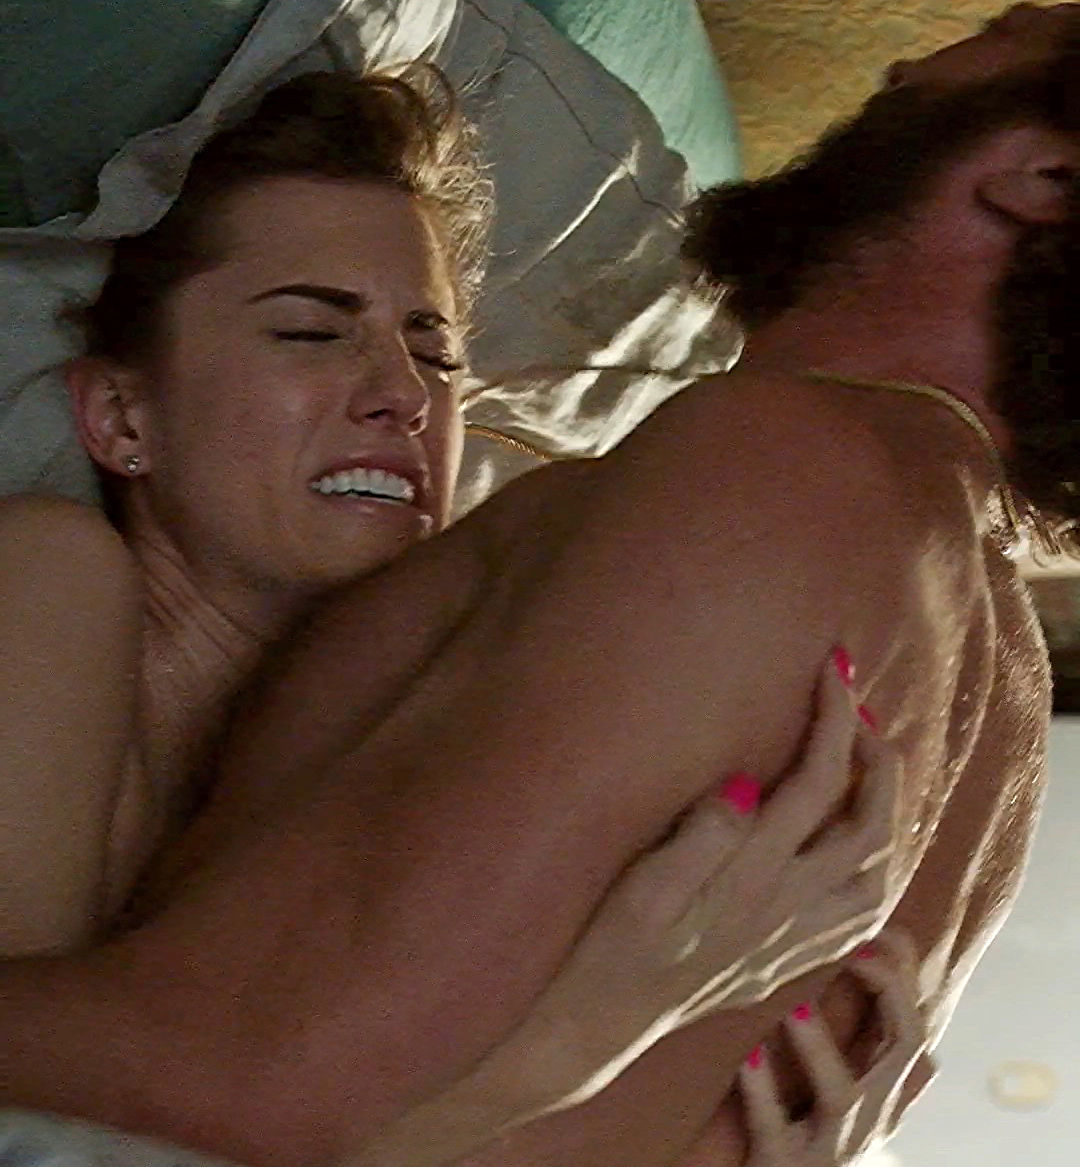 Allison Williams Porn allison williams moaning loudly as fucks in girls series